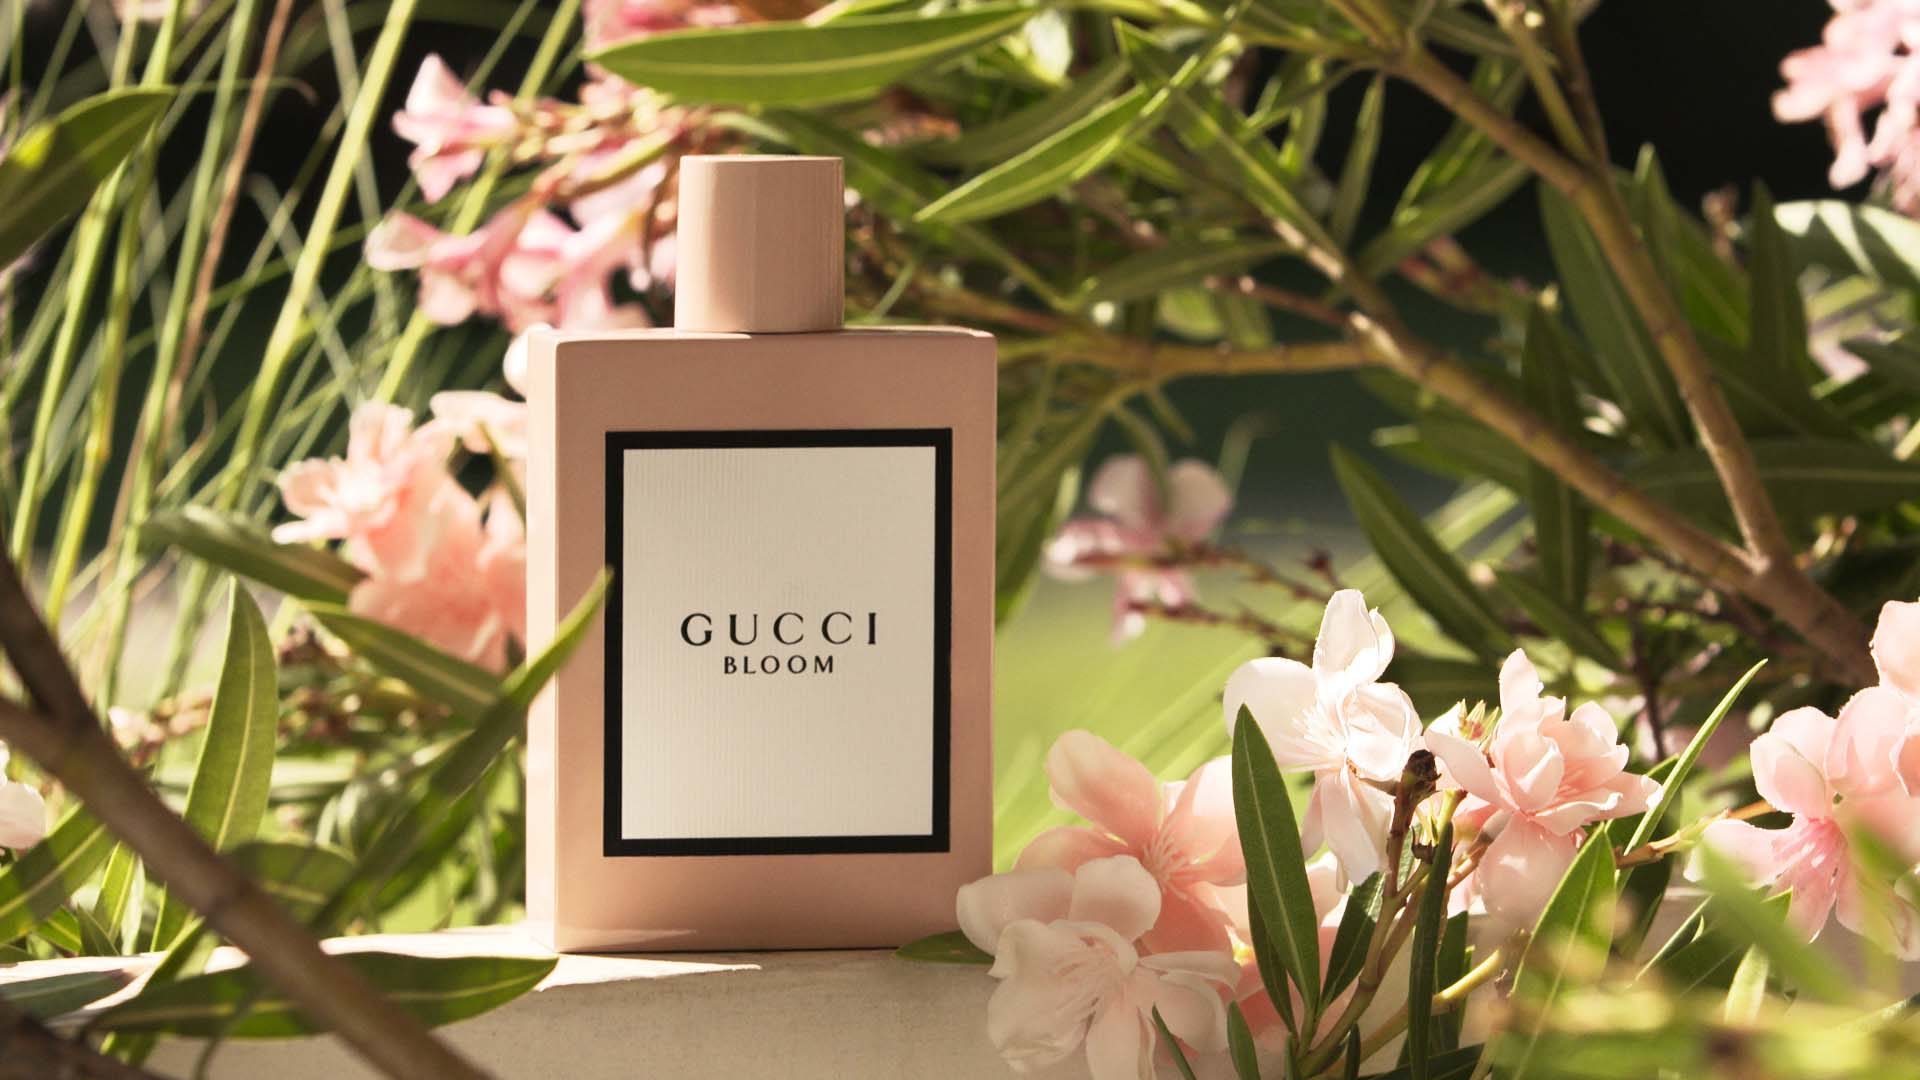 A Sensorial Delight Alberto Morillass Gucci Bloom Transports You